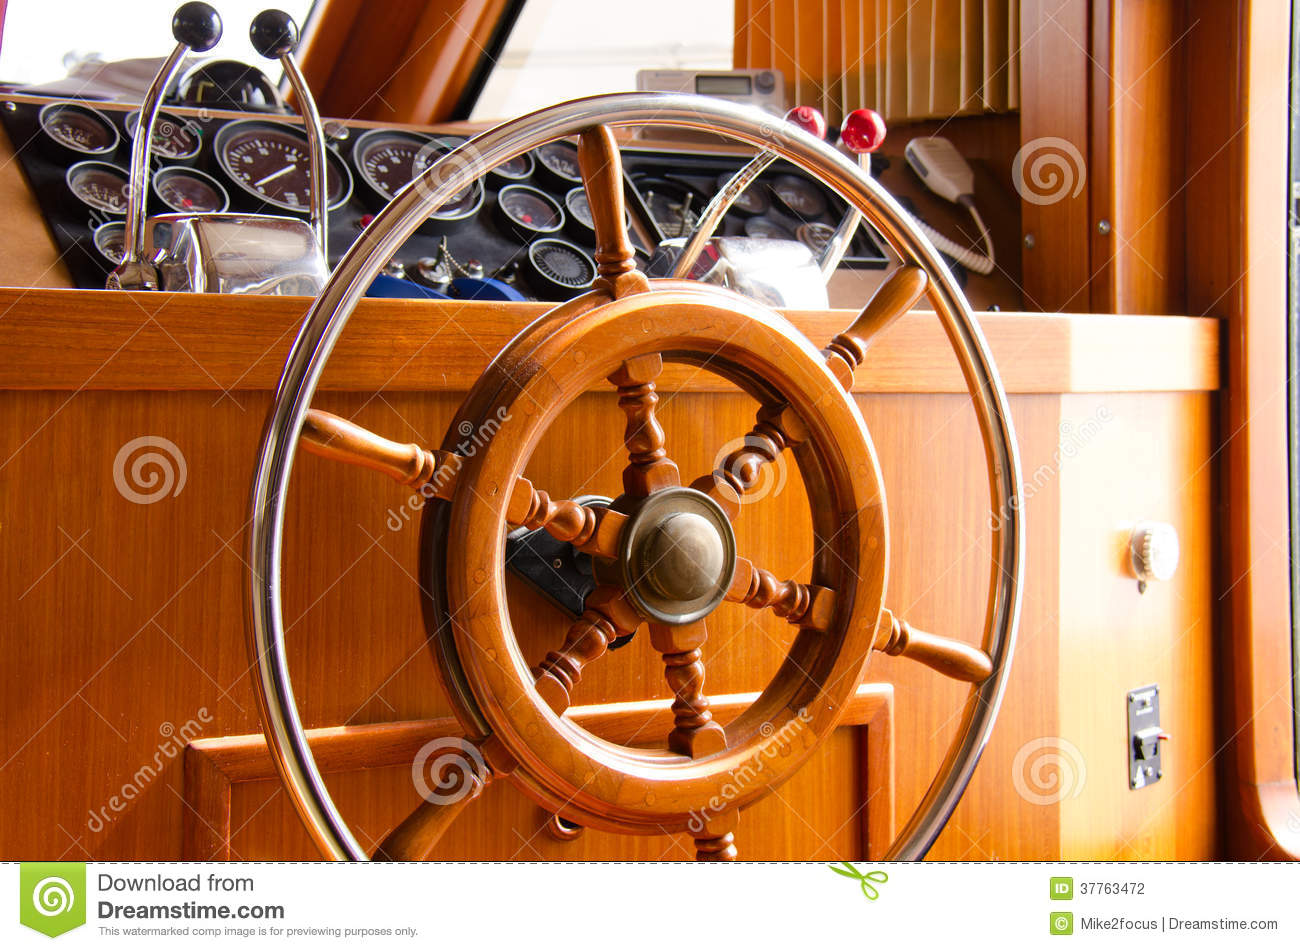 Interior Steering Wheel Of Large Yacht Boat Stock Photography - Image: 37763472